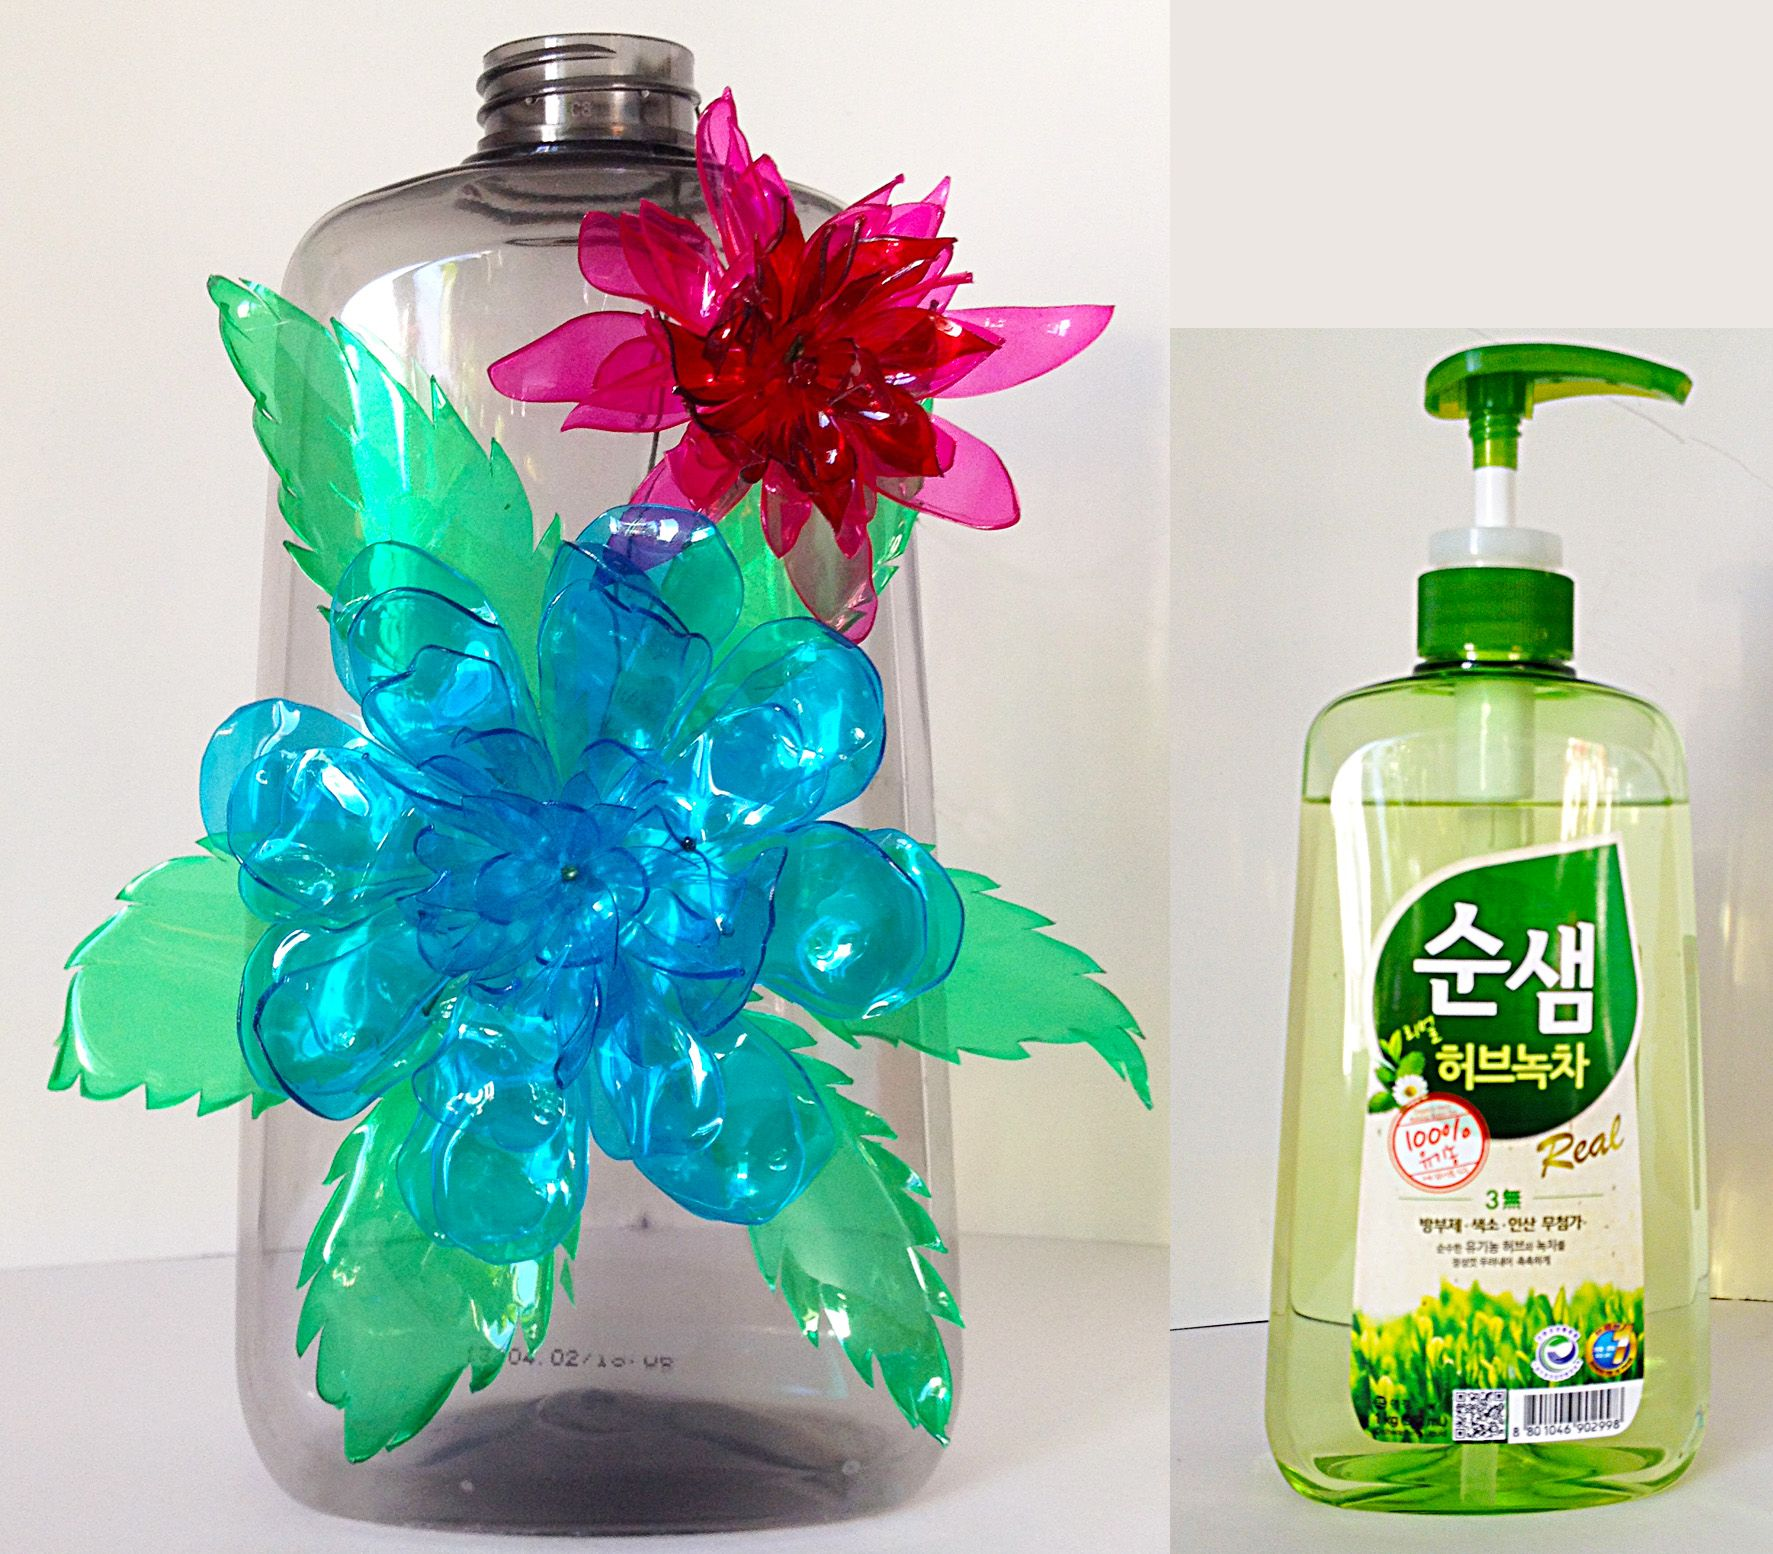 dishwashing detergent bottle recycle plastic bottles flowers plastikflaschen pinterest. Black Bedroom Furniture Sets. Home Design Ideas